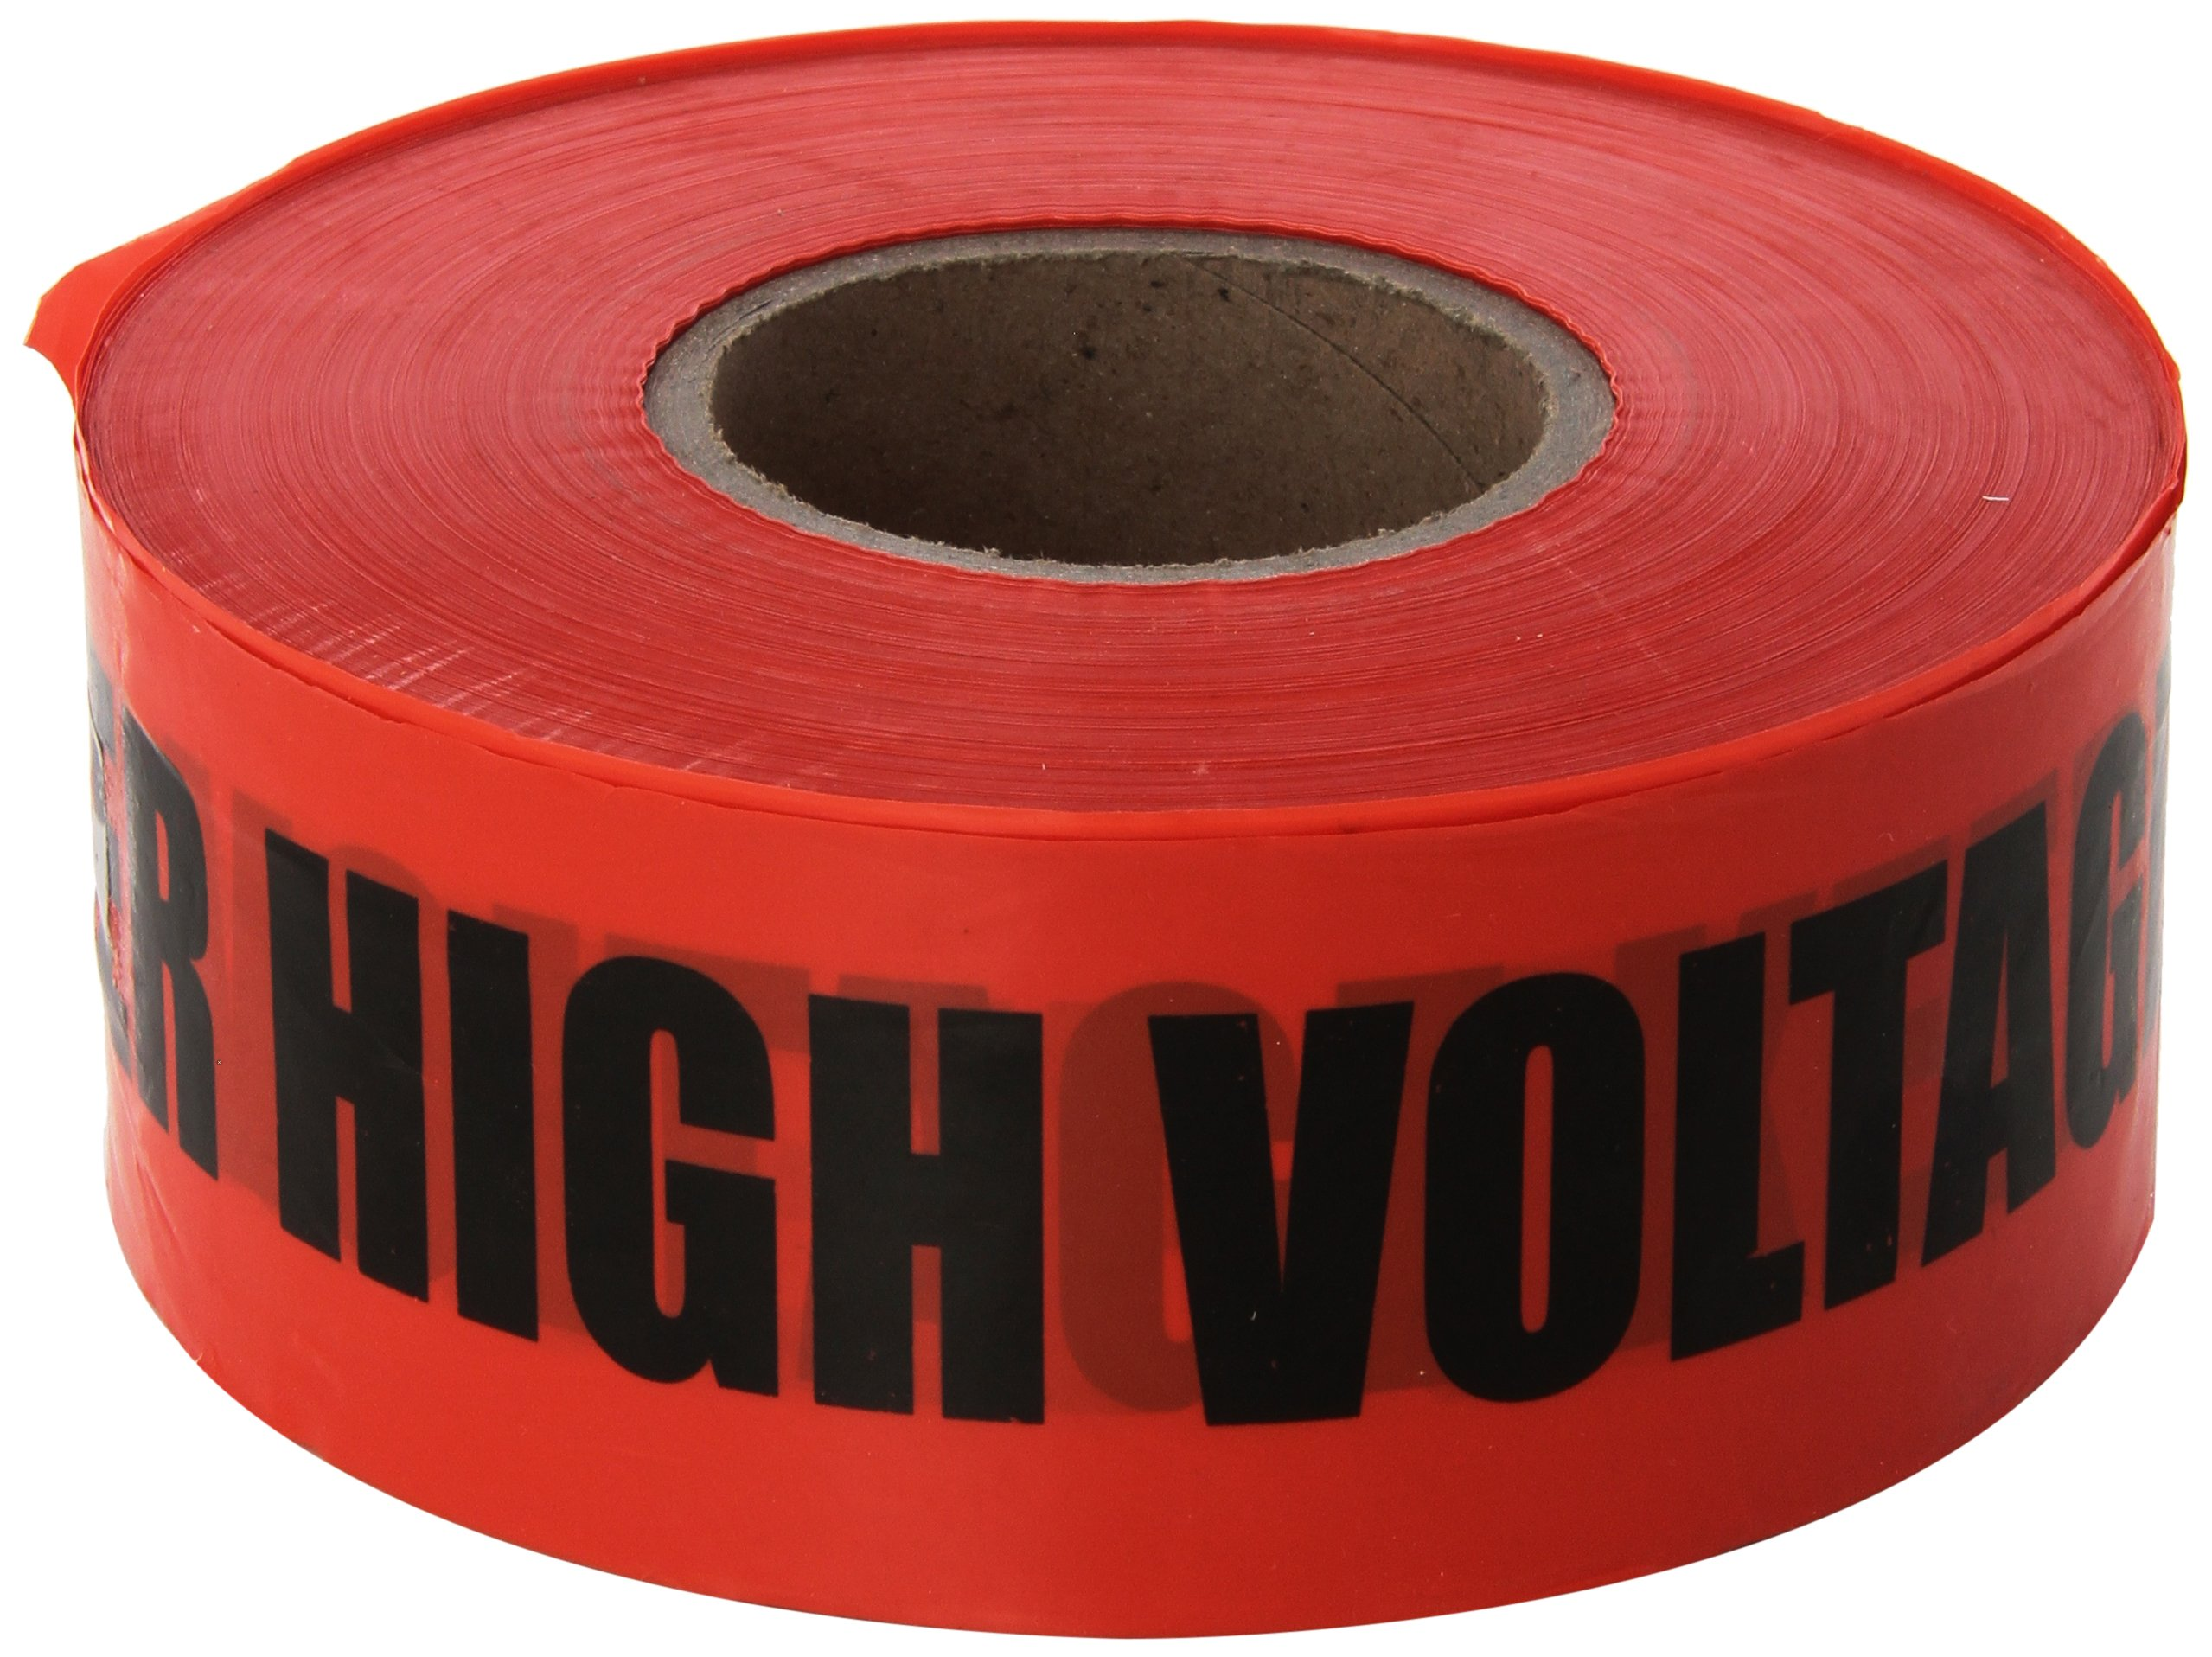 Ideal 42-052 Barricade''Danger High Voltage Keep Out'' Tape, 4.0 mil Thickness, 3'' x 1, 000' Size, Red